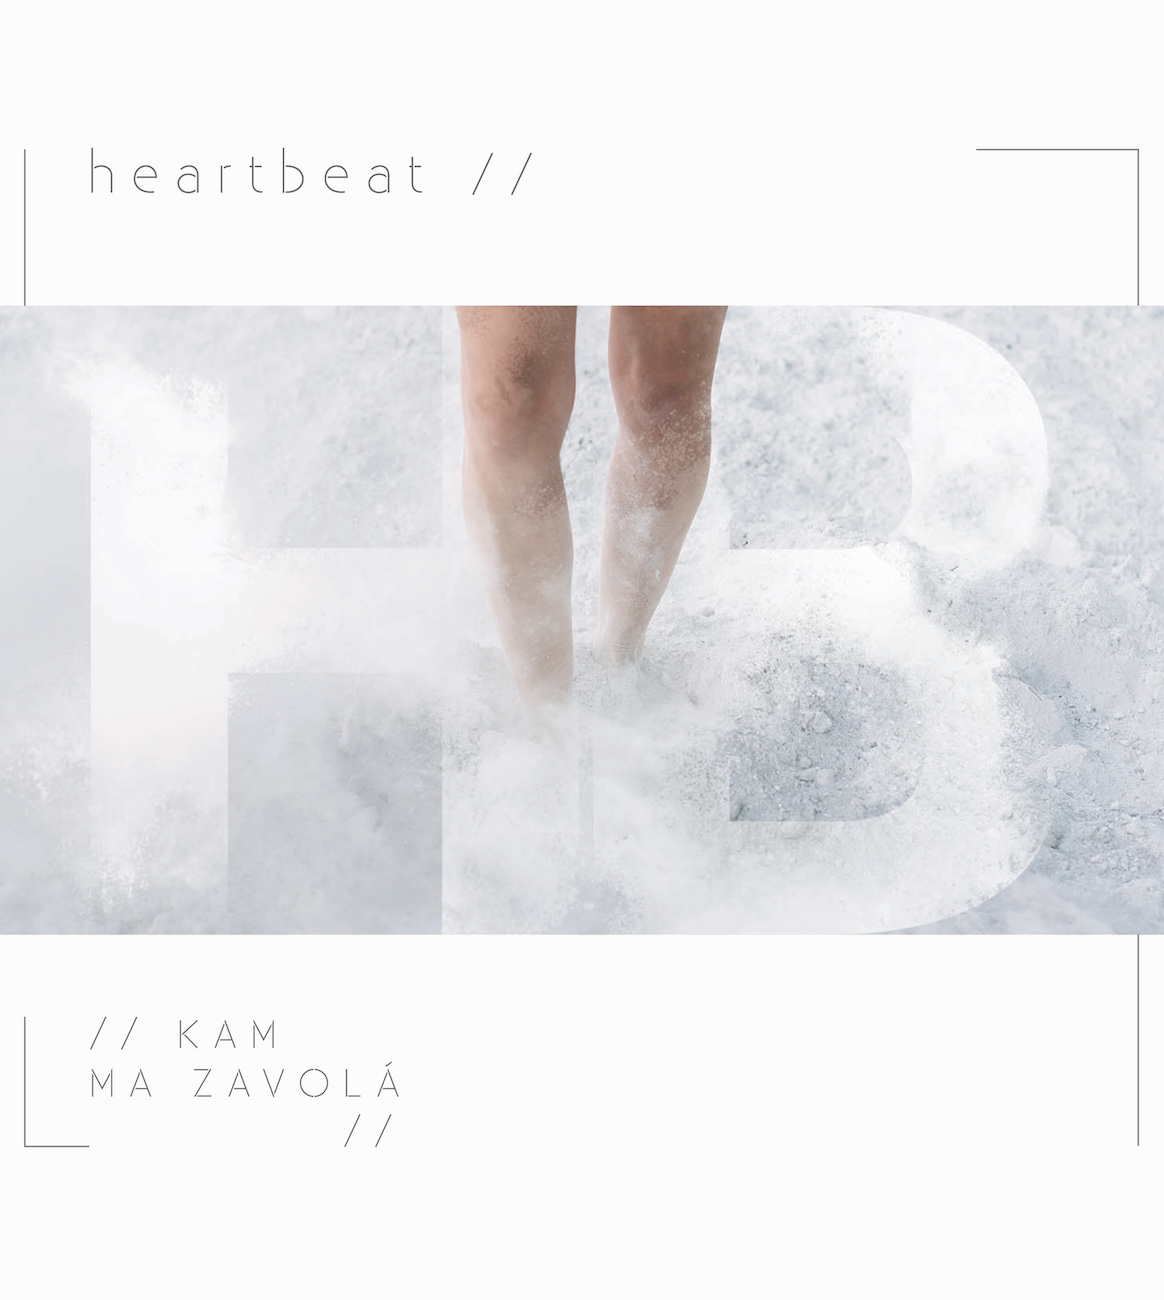 Heartbeat - 2017 - Kam ma zavolá CD